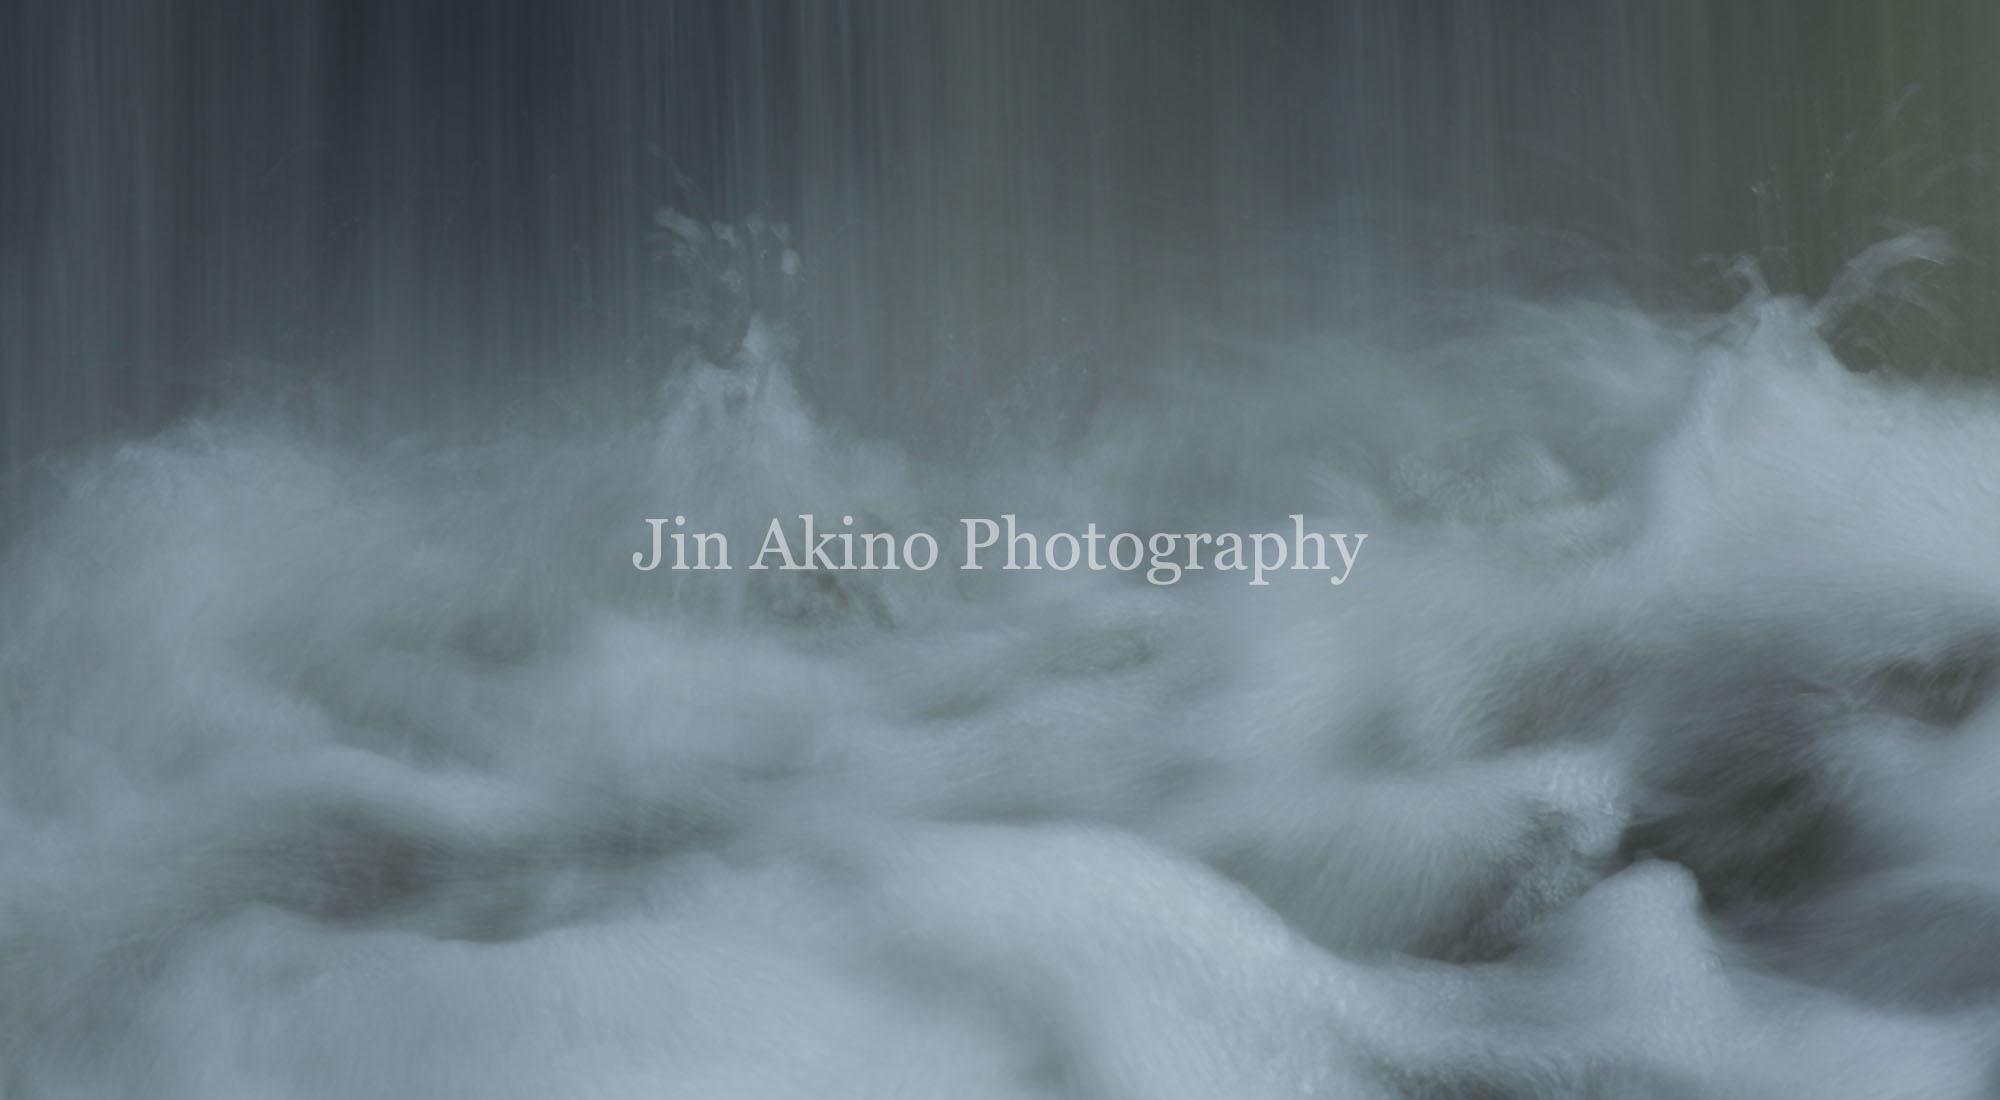 Jin Akino Photography